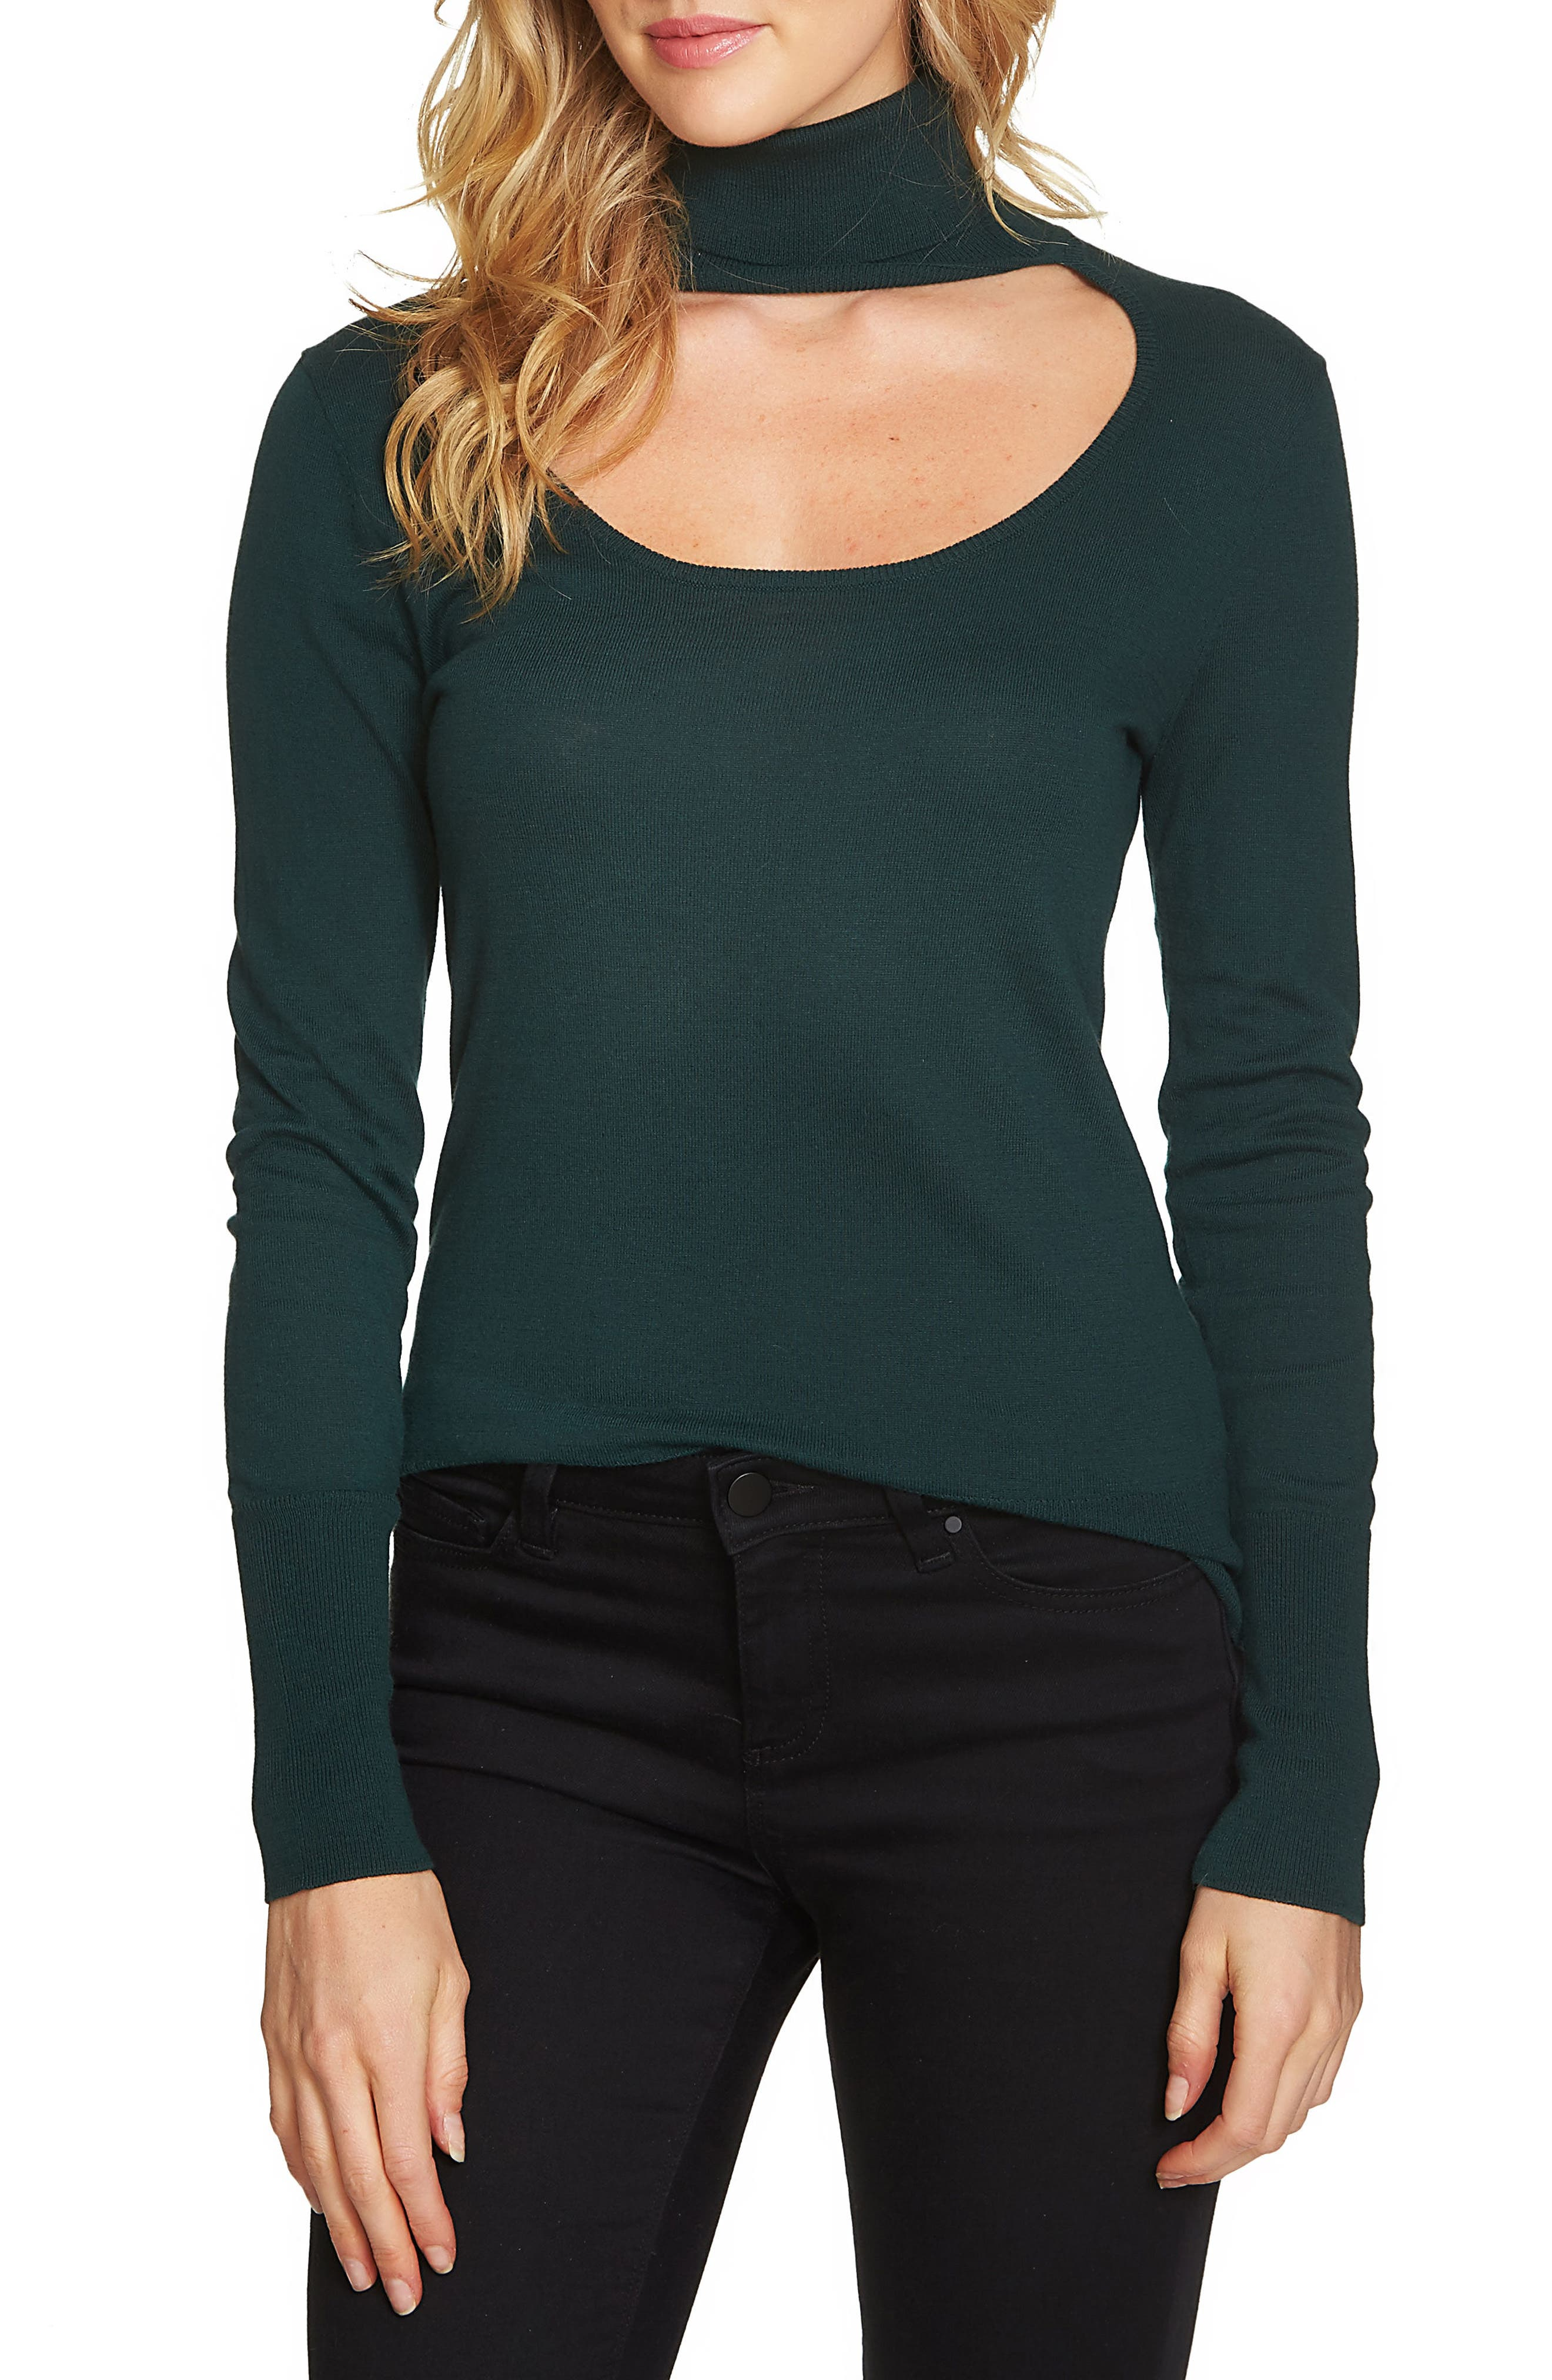 Main Image - 1.STATE Cutout Turtleneck Top